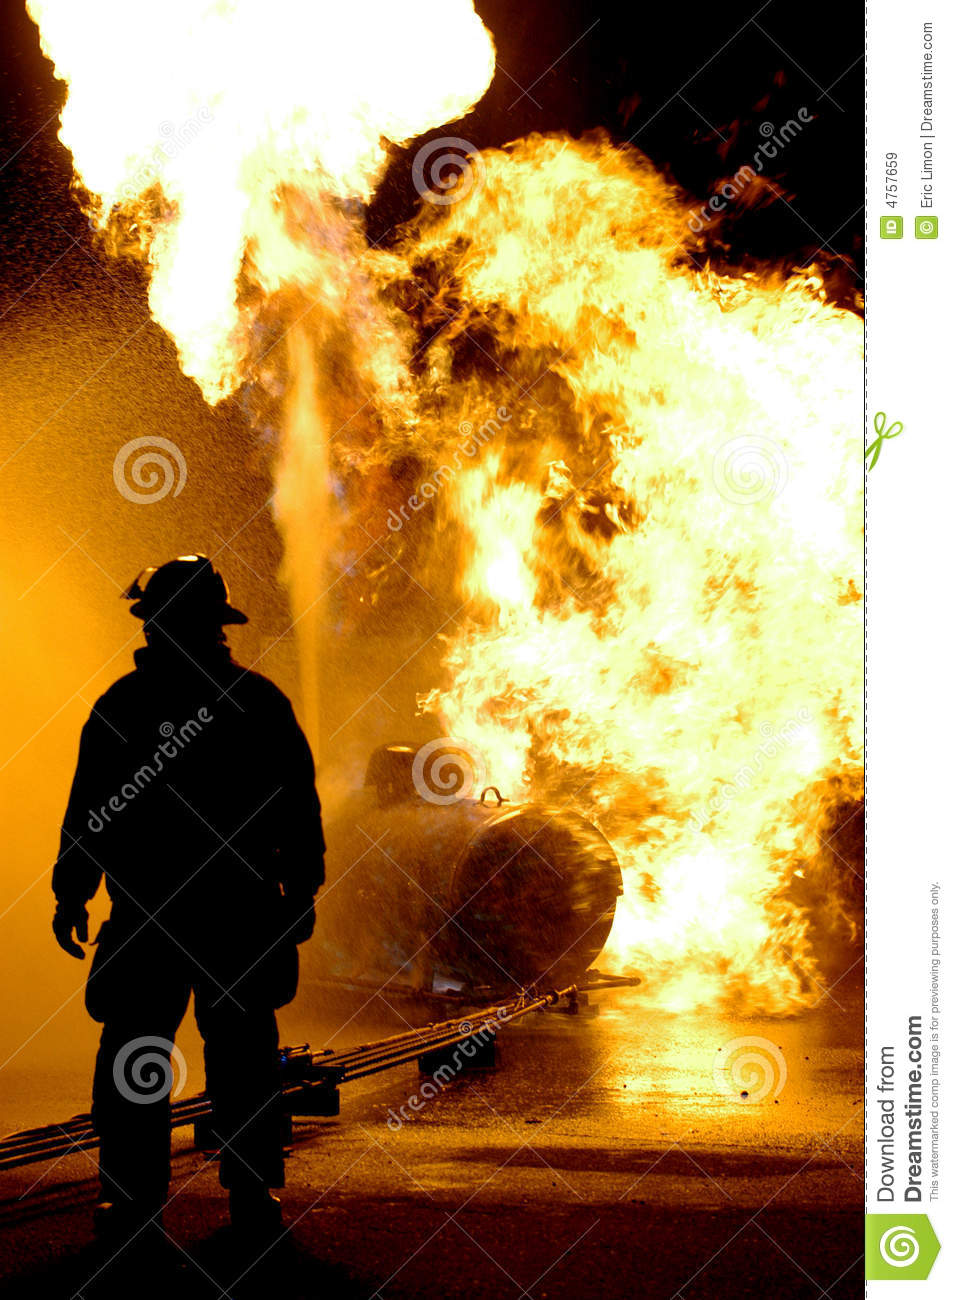 Fire Fighter and Flames